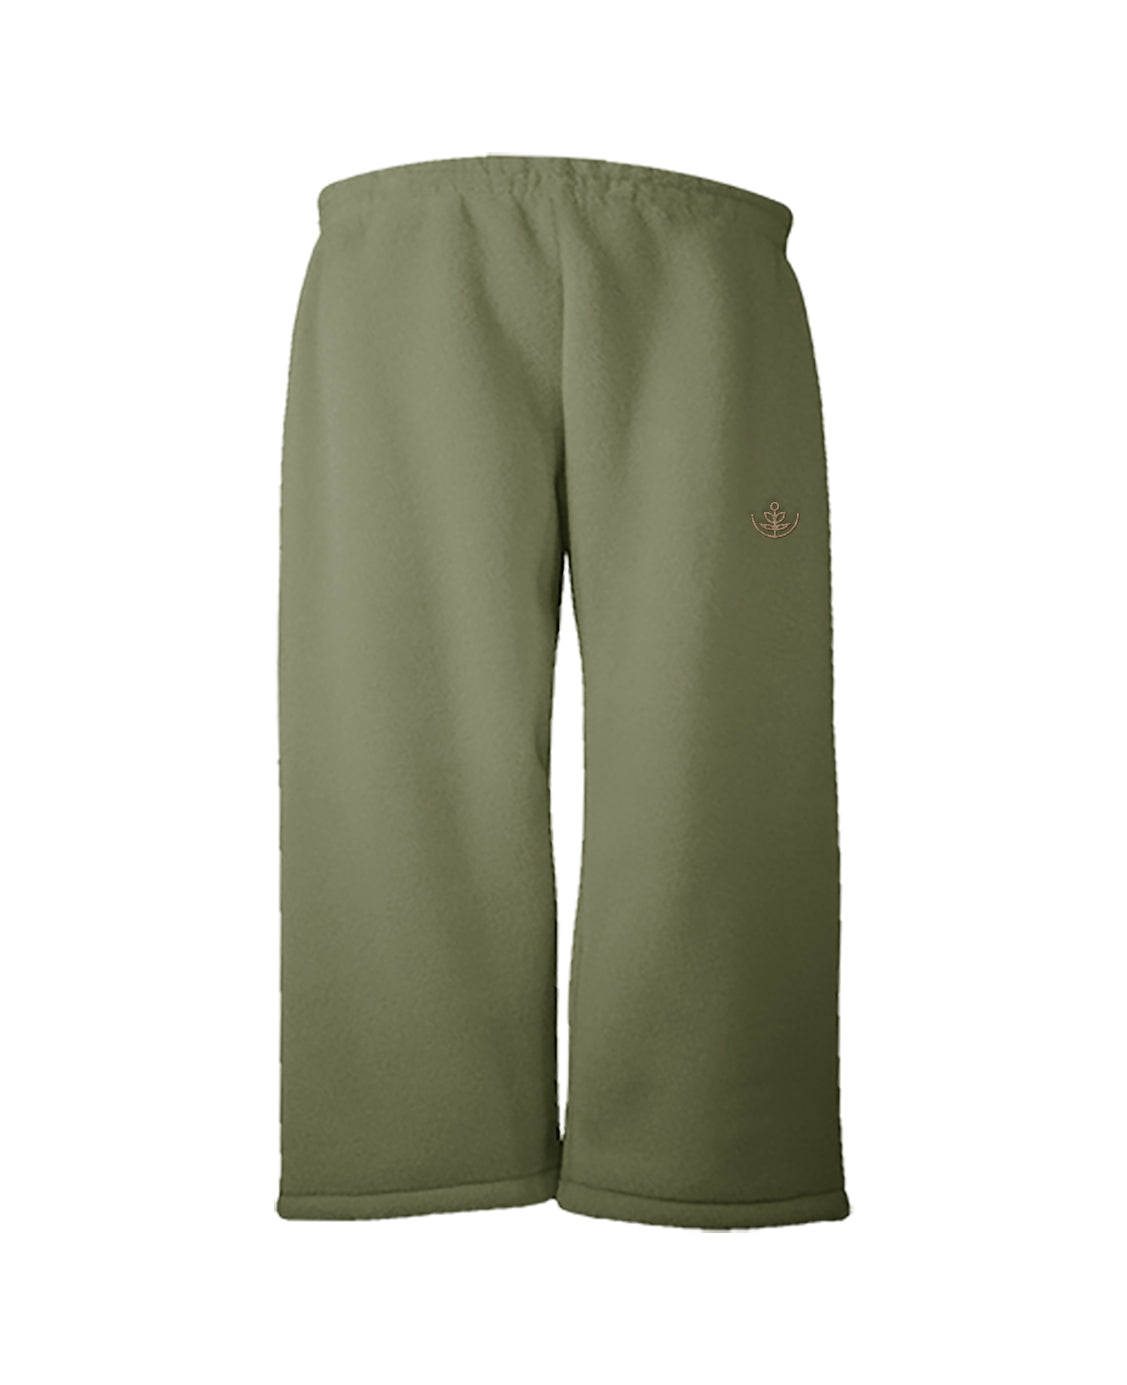 ROTHEWOOD FLEECE PANTS, TODDLER